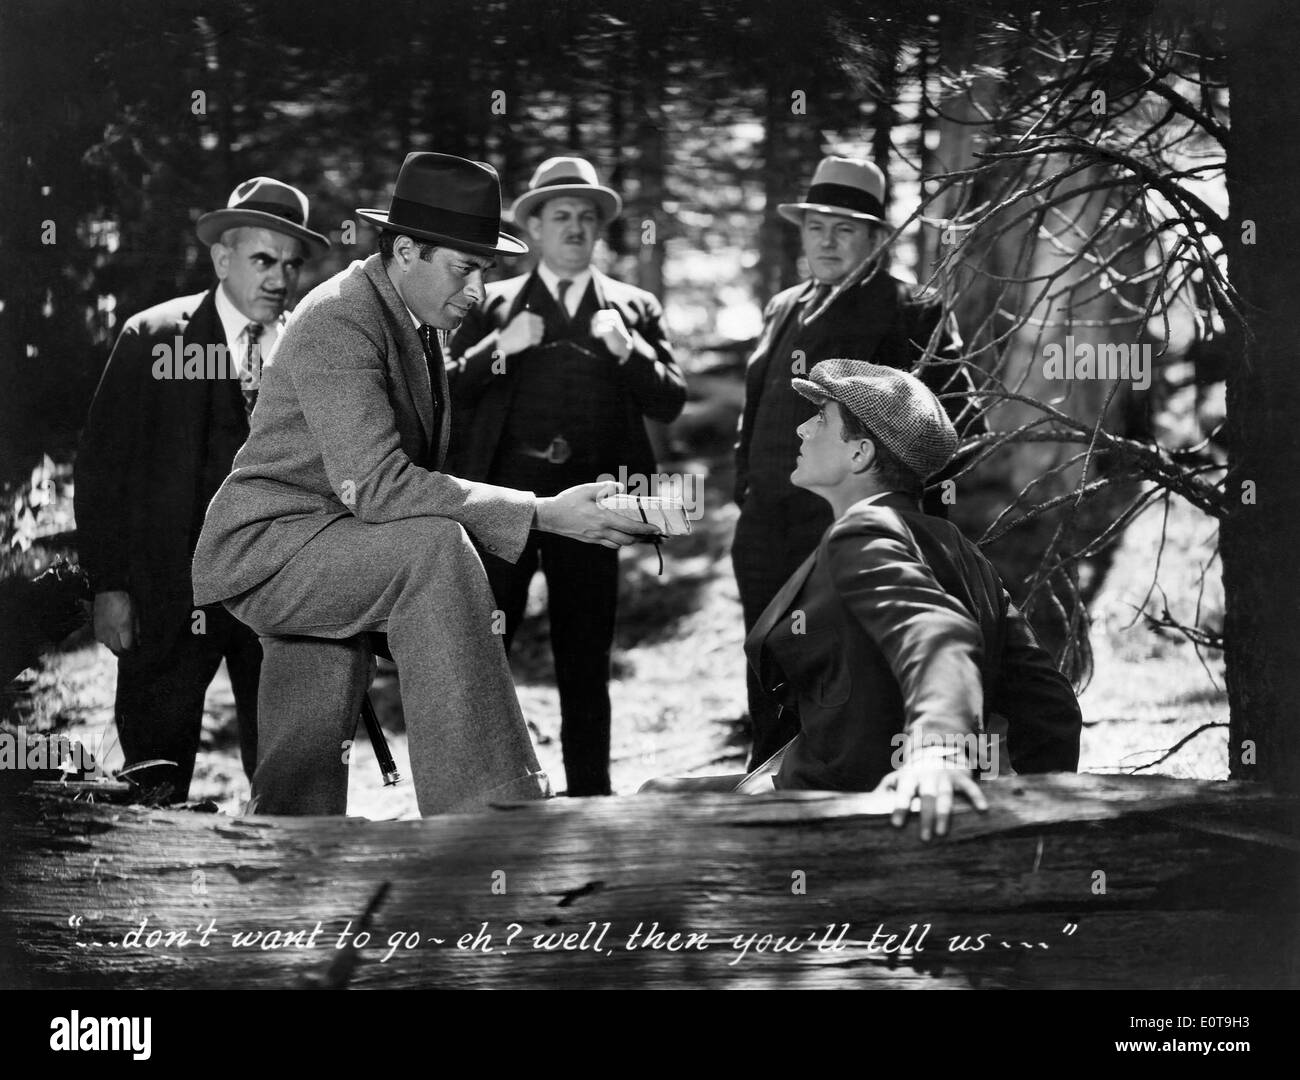 Irving Pichel (L) & Phillips Holmes (R), on-set of the Film, 'An American Tragedy', 1931 - Stock Image